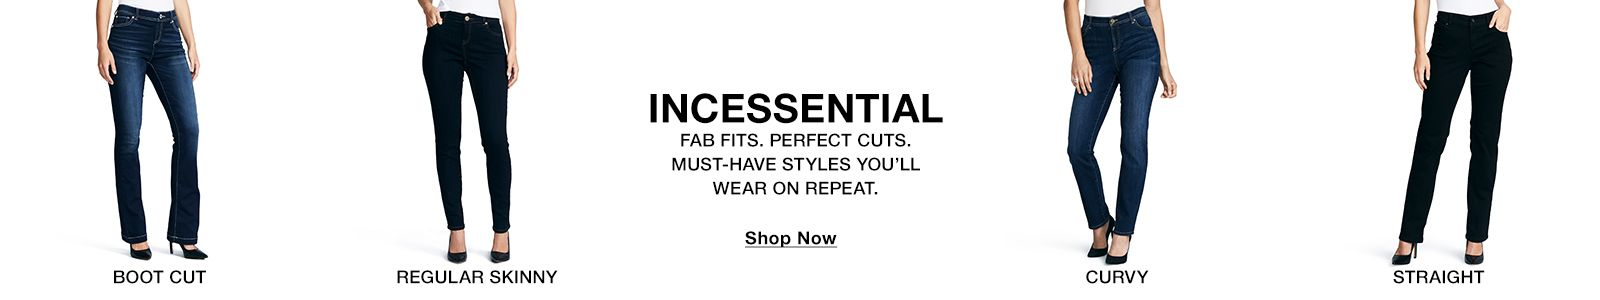 Boot cut, Regular Skinny, Incessential fab Fits, Perfect cuts, Must Have Styles you'll Wear on Repeat, Shop Now, Curvy, Straightt